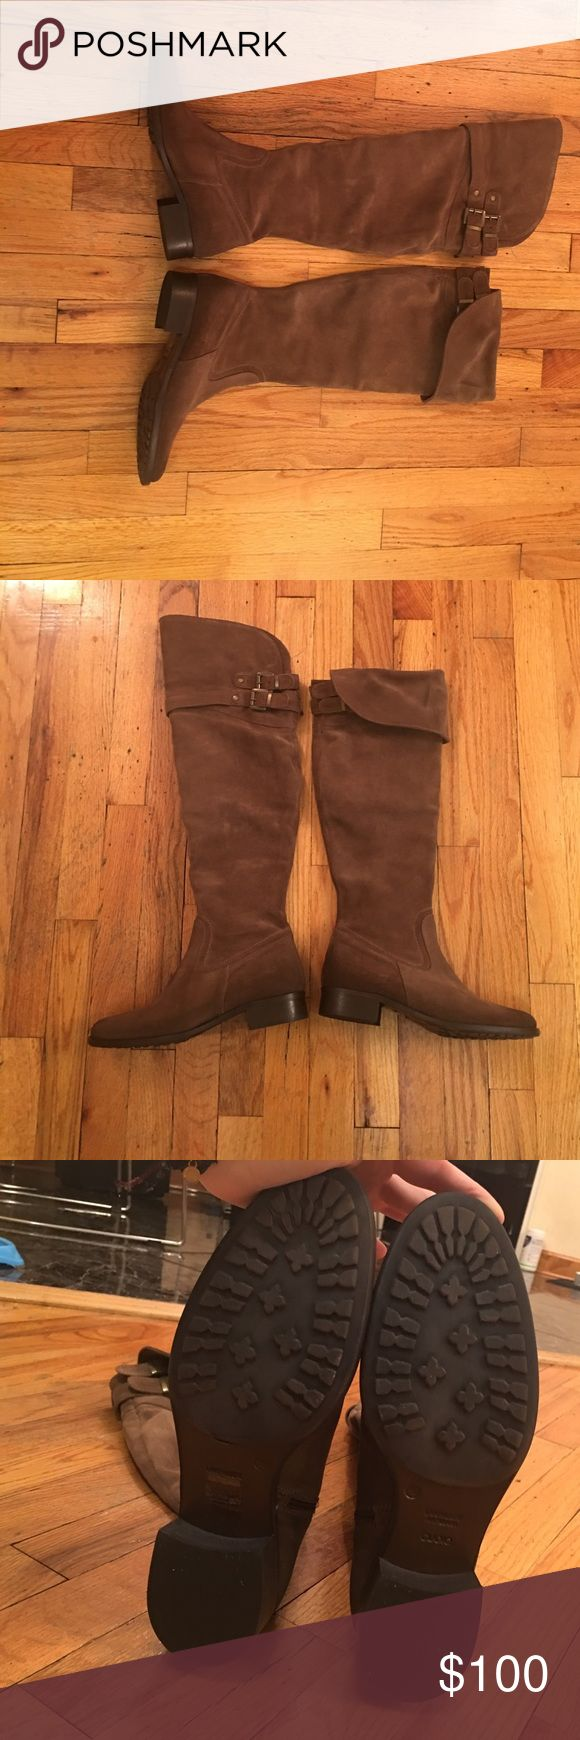 Brown suede over the knee boots. Brown suede boots with buckles and zipper on the side. Never worn. Made in Argentina. CUOIO Shoes Over the Knee Boots